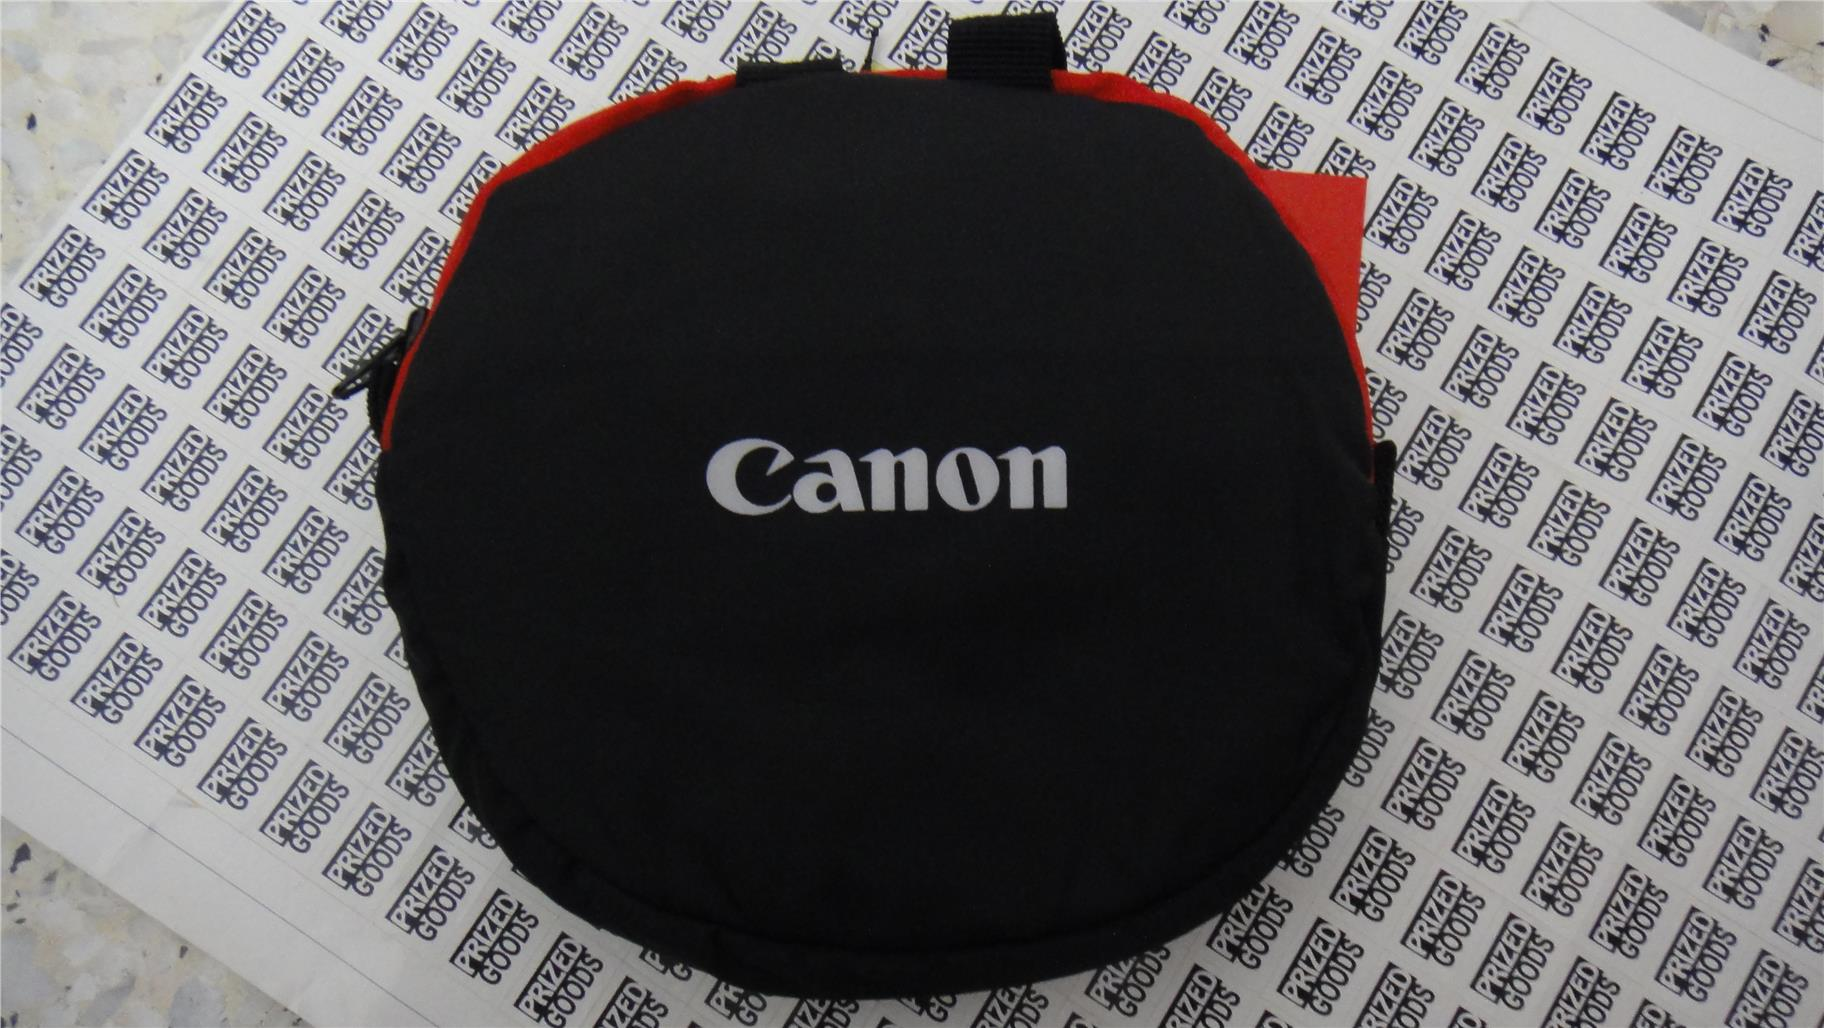 Canon EOS 600D 650D multipurpose waterproof camera bag and other